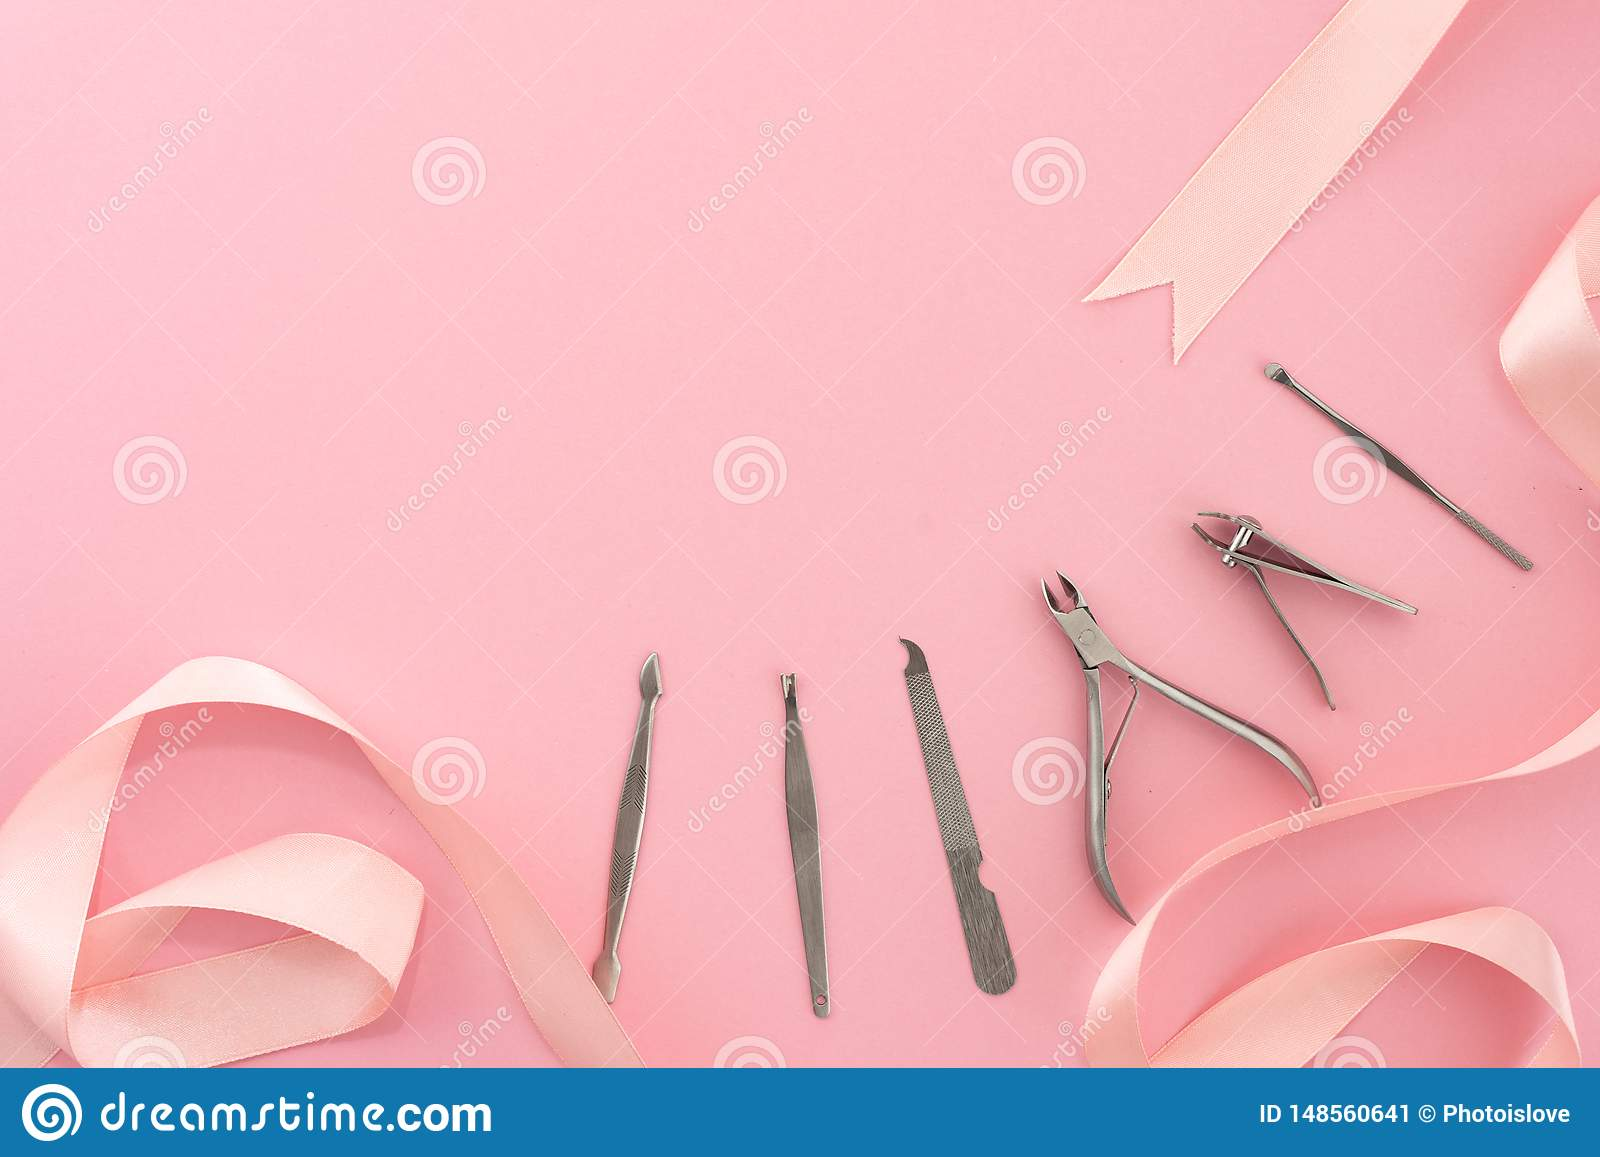 Professional Tools Of Manicure Set For Nail Care On A Pink Background With A Bow Beauty Concept